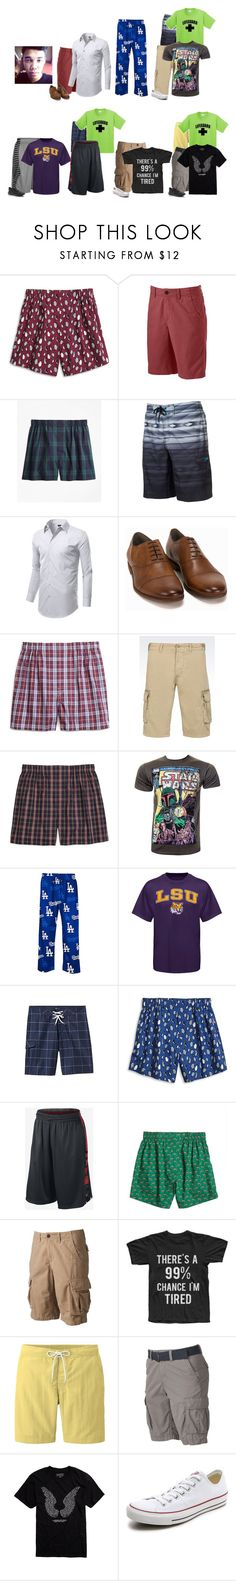 """Jeremiah This Week"" by thesummitfam ❤ liked on Polyvore featuring Brooks Brothers, Urban Pipeline, NIKE, Vagabond, Armani Jeans, New Agenda, Old Navy, Uniqlo, SONOMA Goods for Life and Converse"